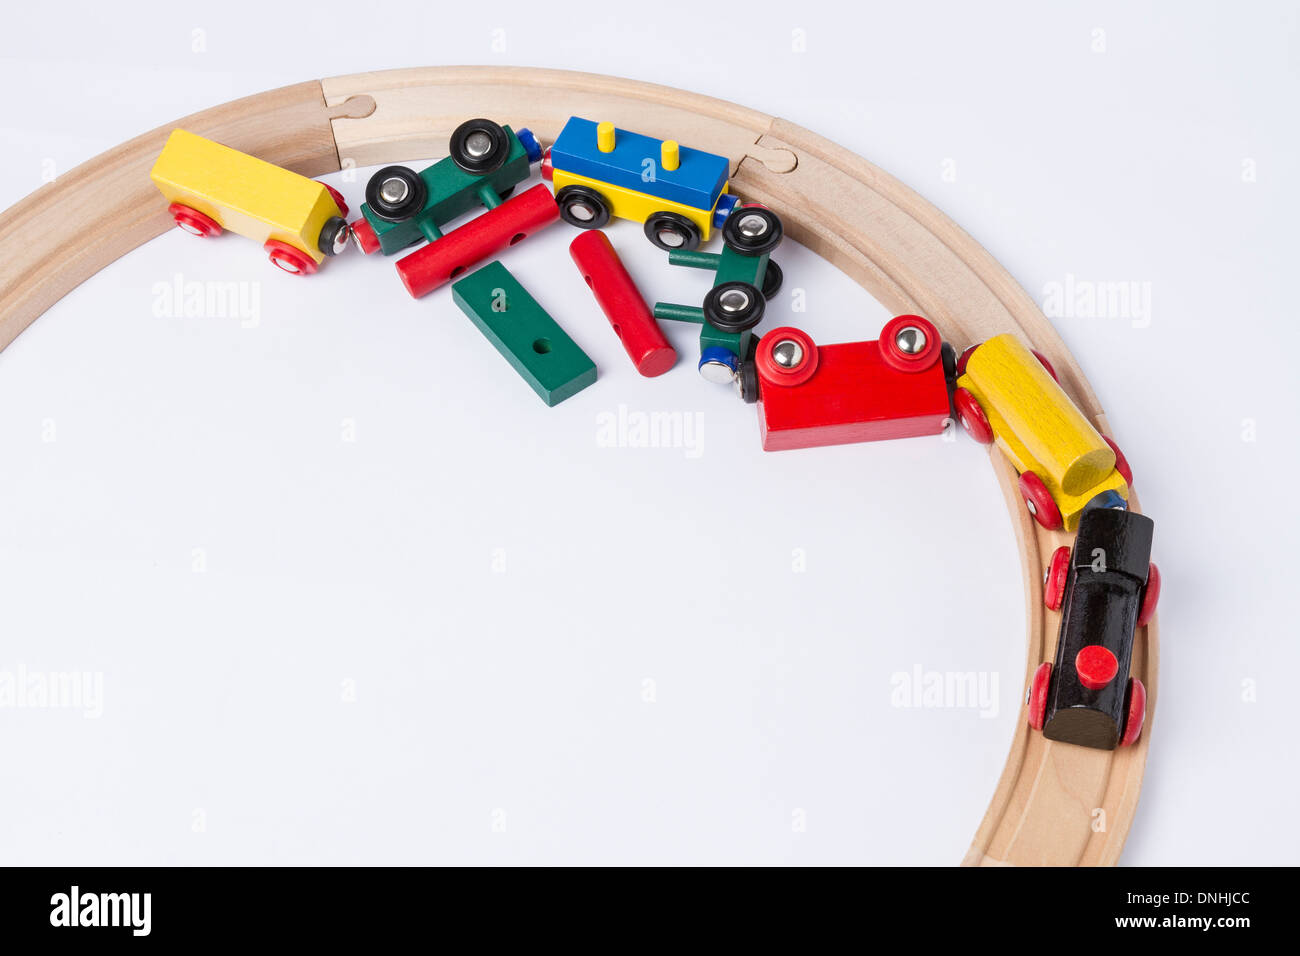 derail wooden toy train in top view. horizontal image Stock Photo